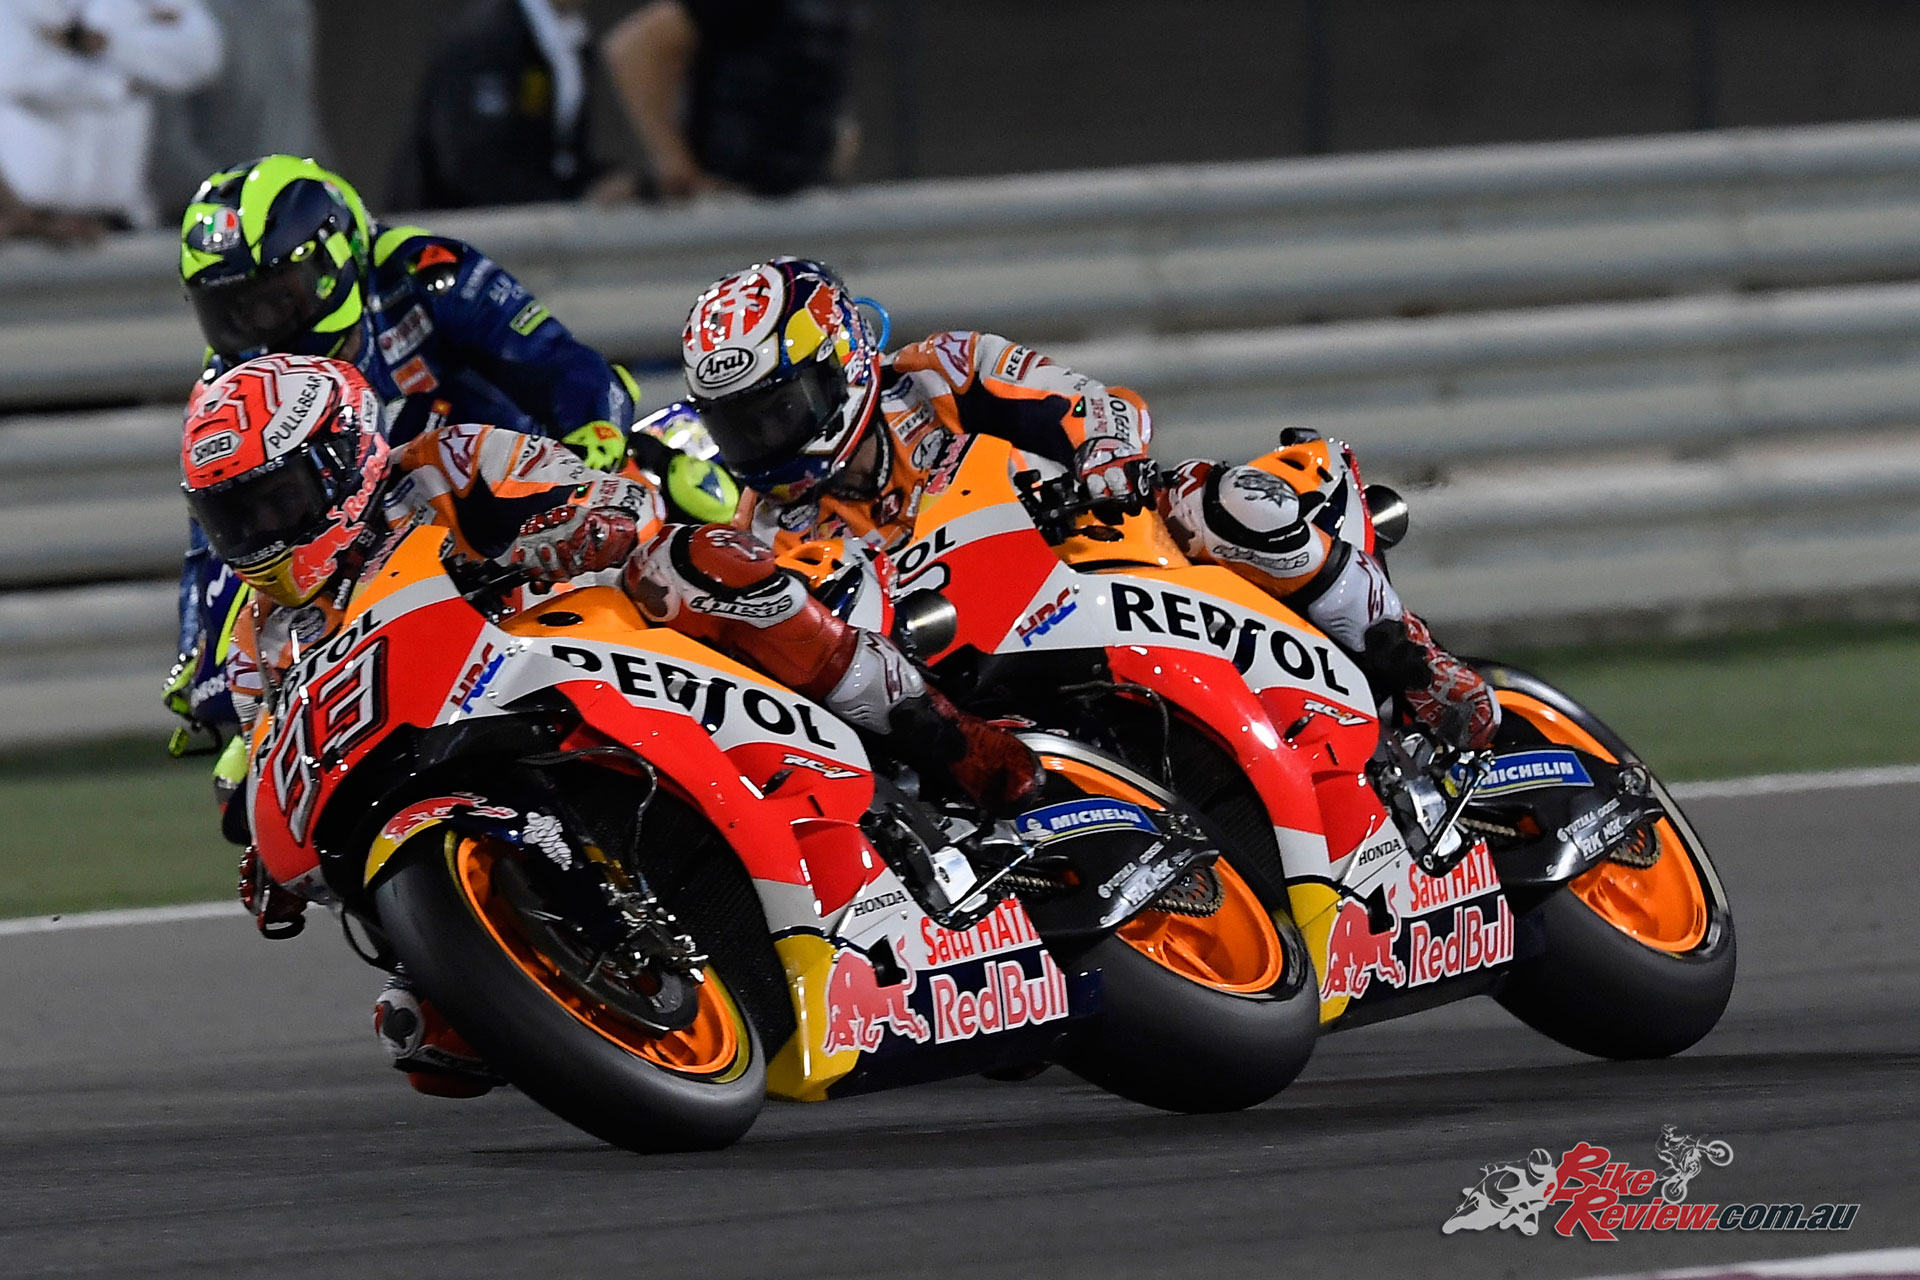 Marquez and Dovizioso battled it out, with Rossi closing the gap at the tail end of the race